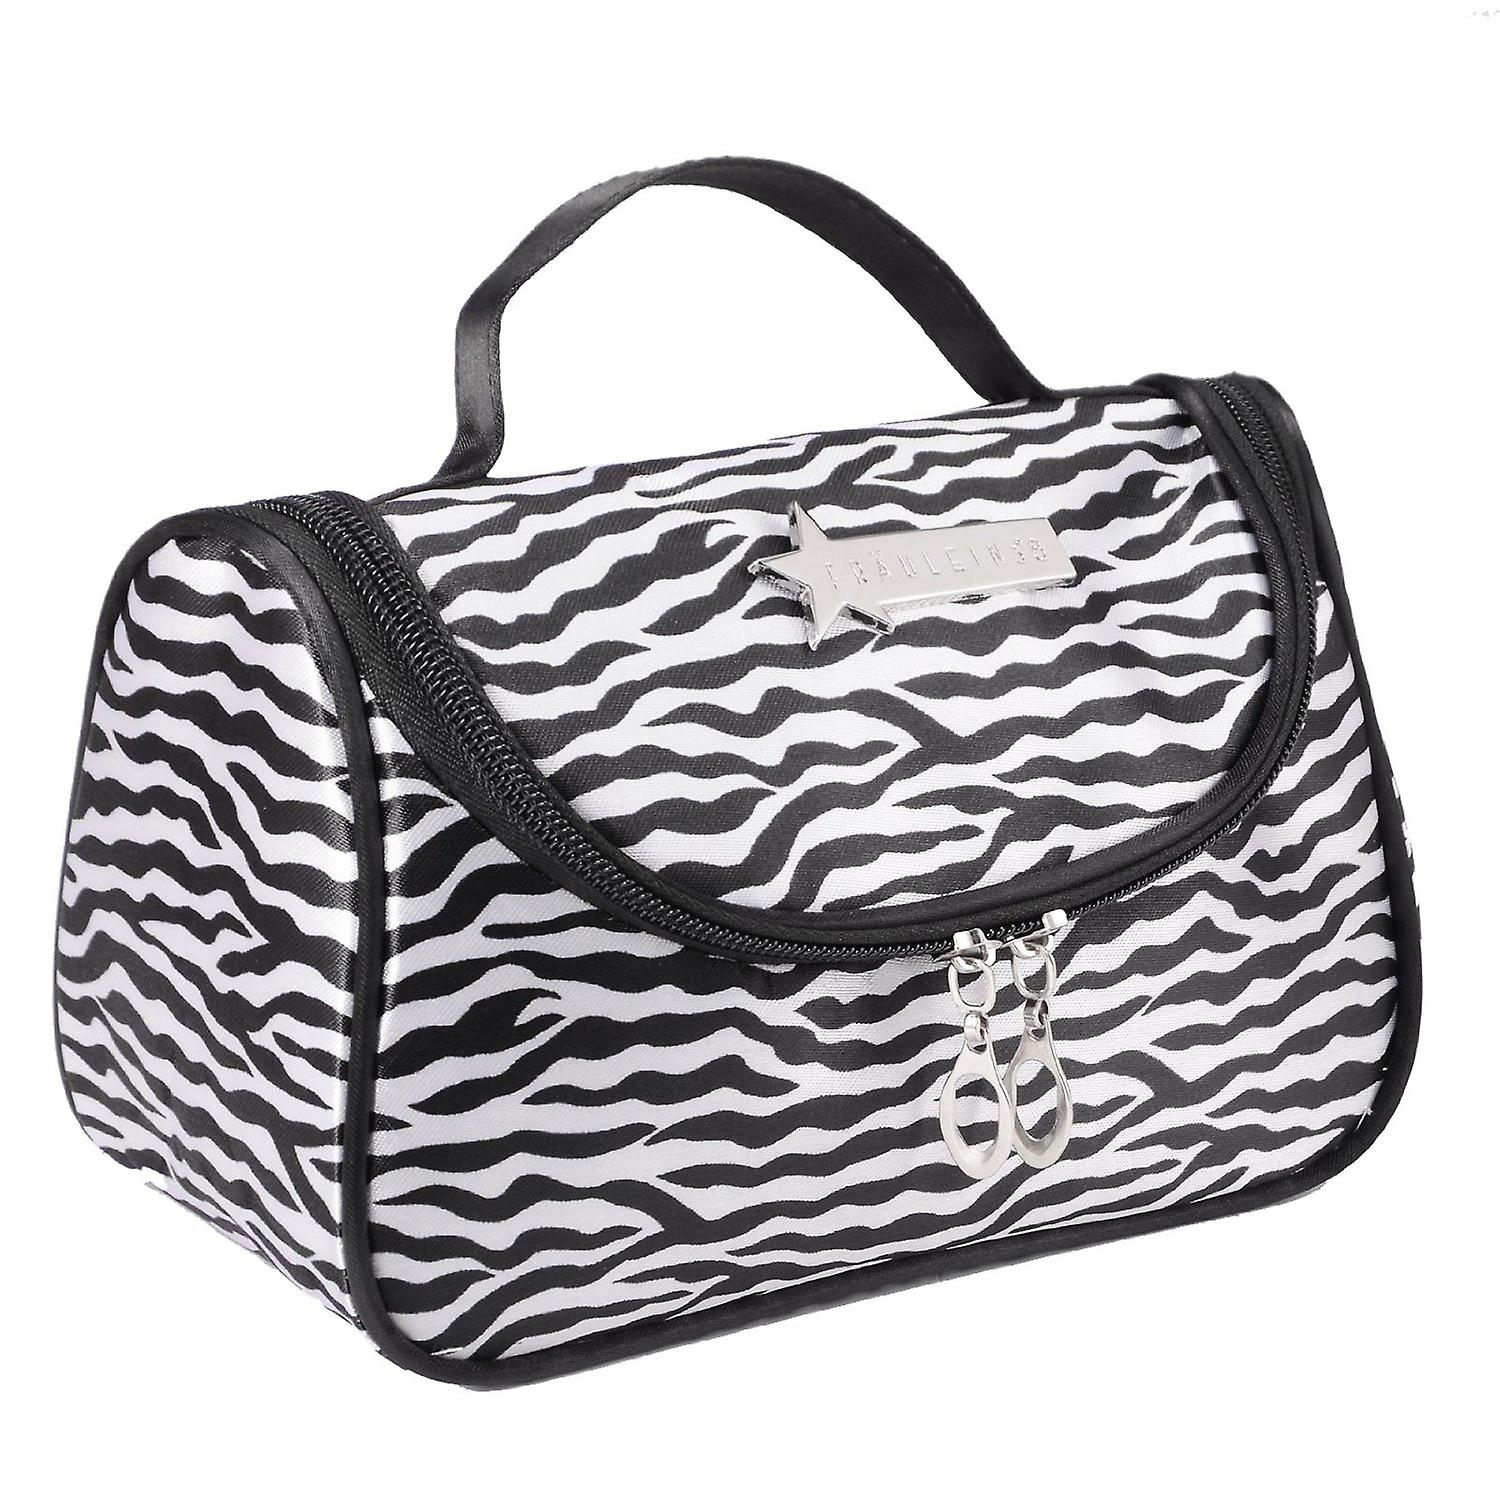 Leopard Vit Mönster Cosmetic Make Up Travel Package Case Pouch - Modell 283